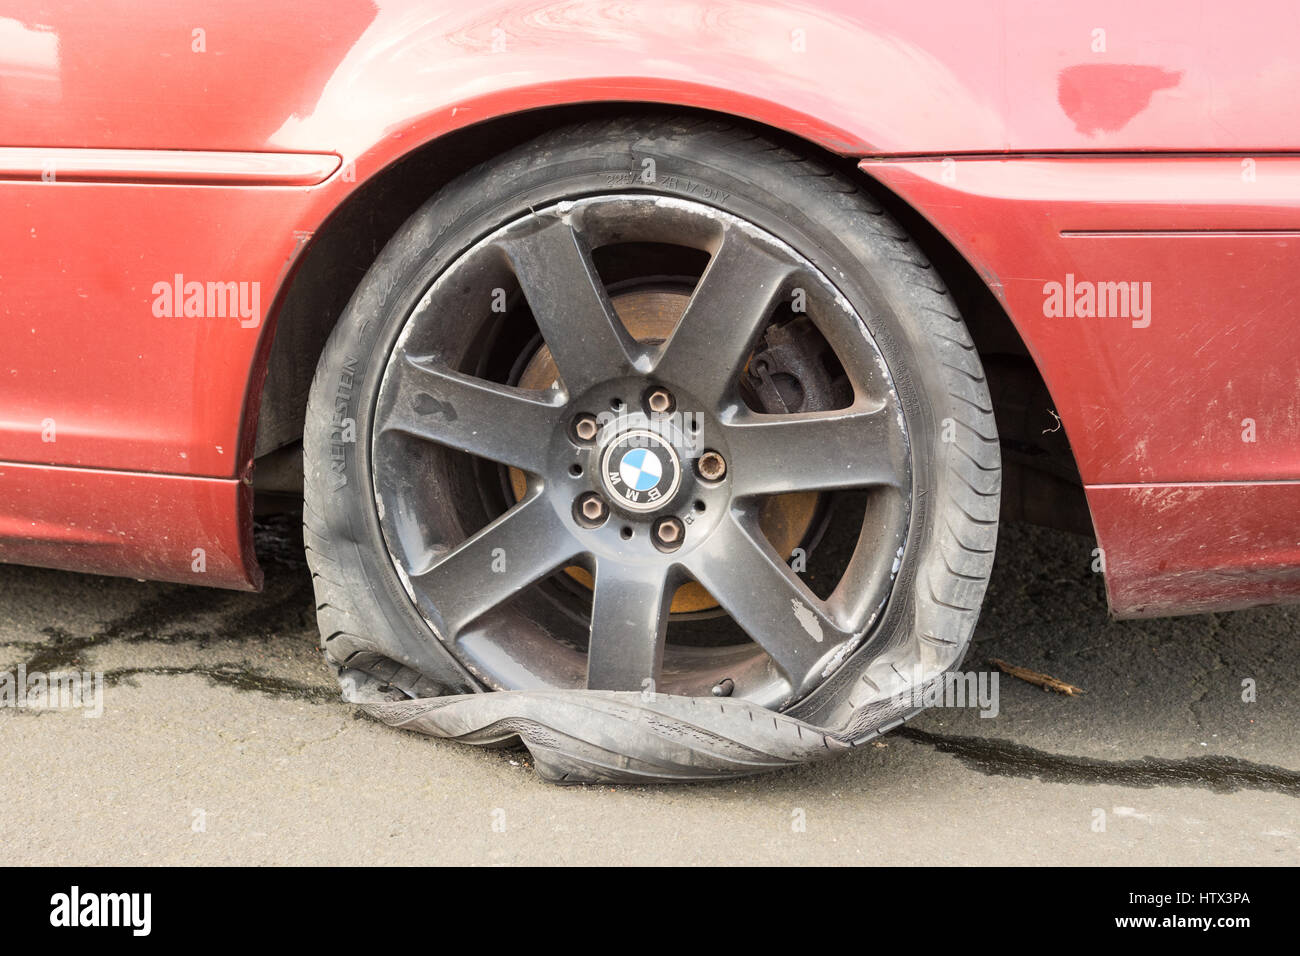 flat burst tyre tire with severe kerbing curbing damage to alloy wheel wheels - Stock Image